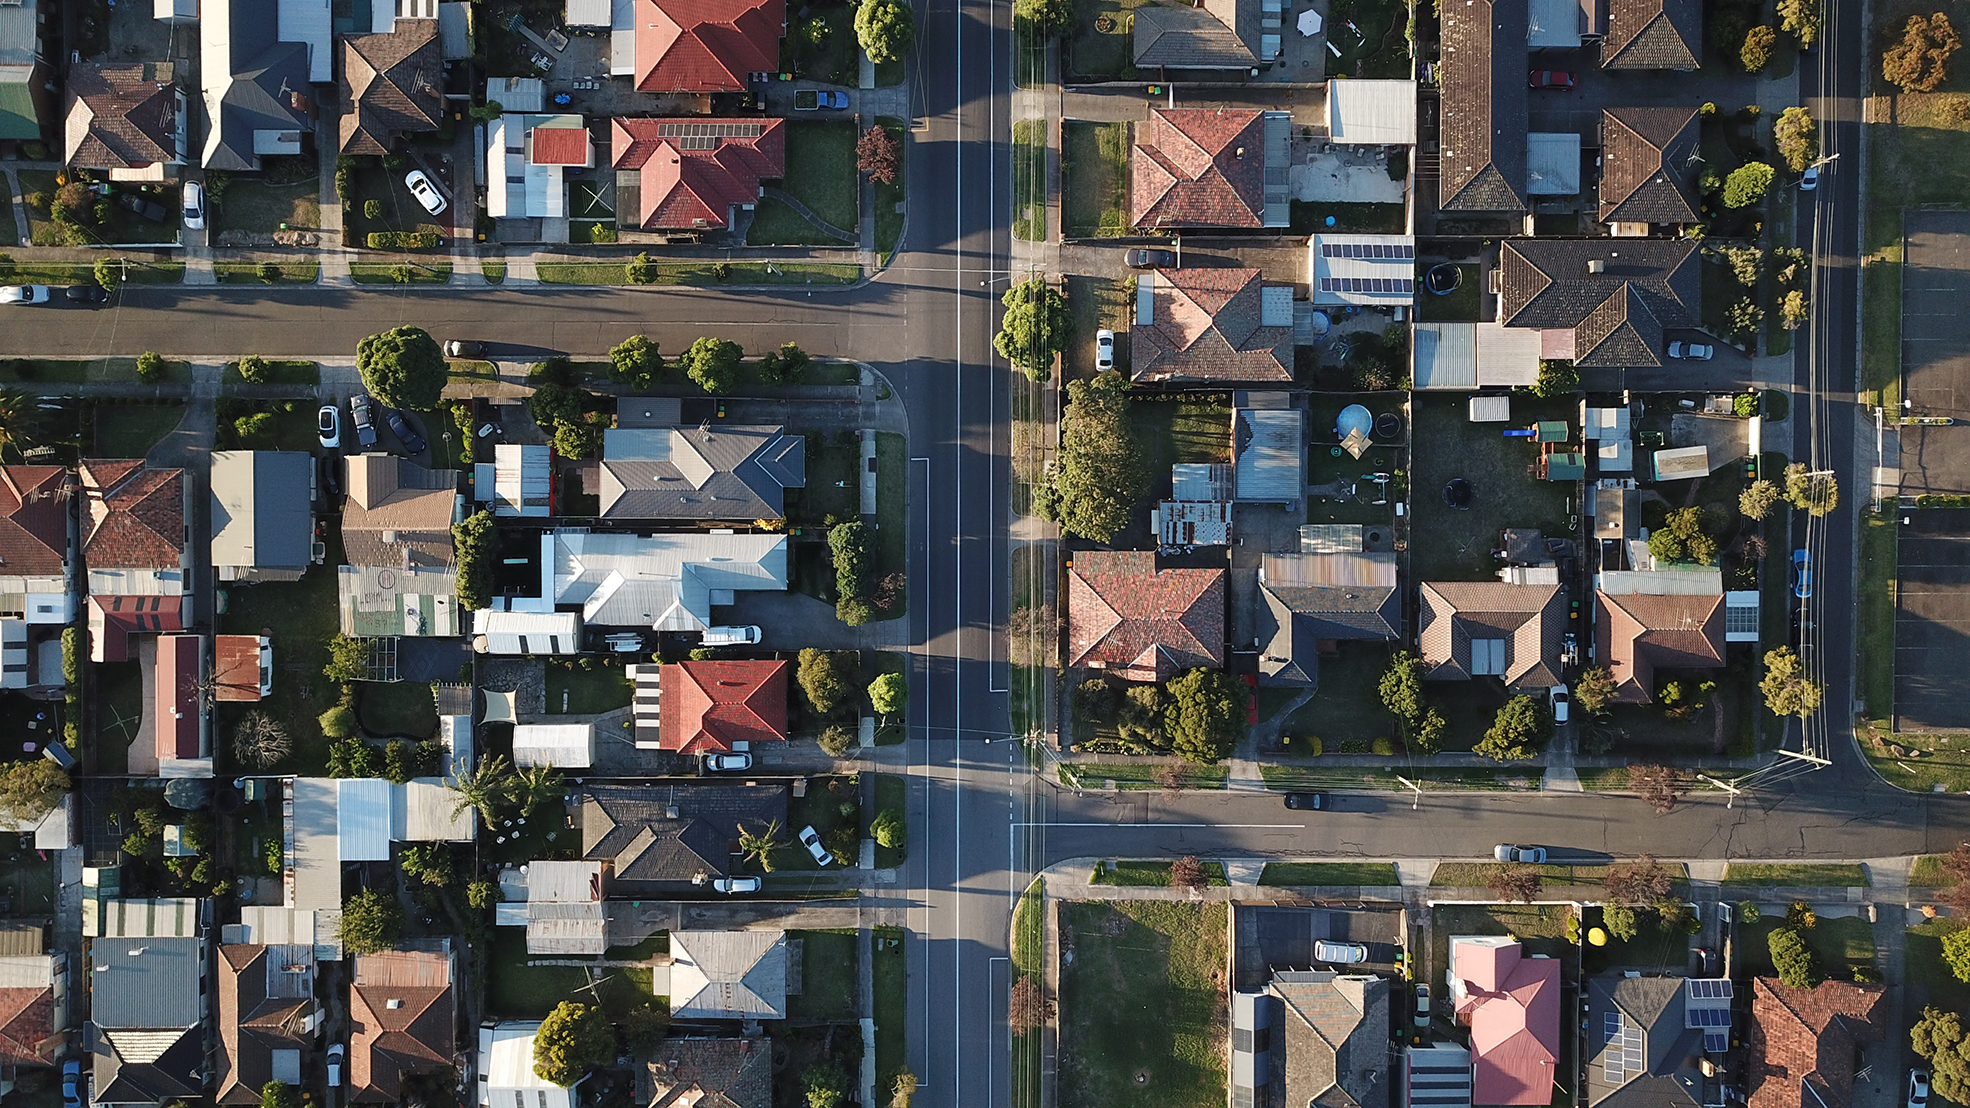 Are the 'Burbs' Making a Comeback? Why Multifamily Housing is Expanding in Suburban Areas